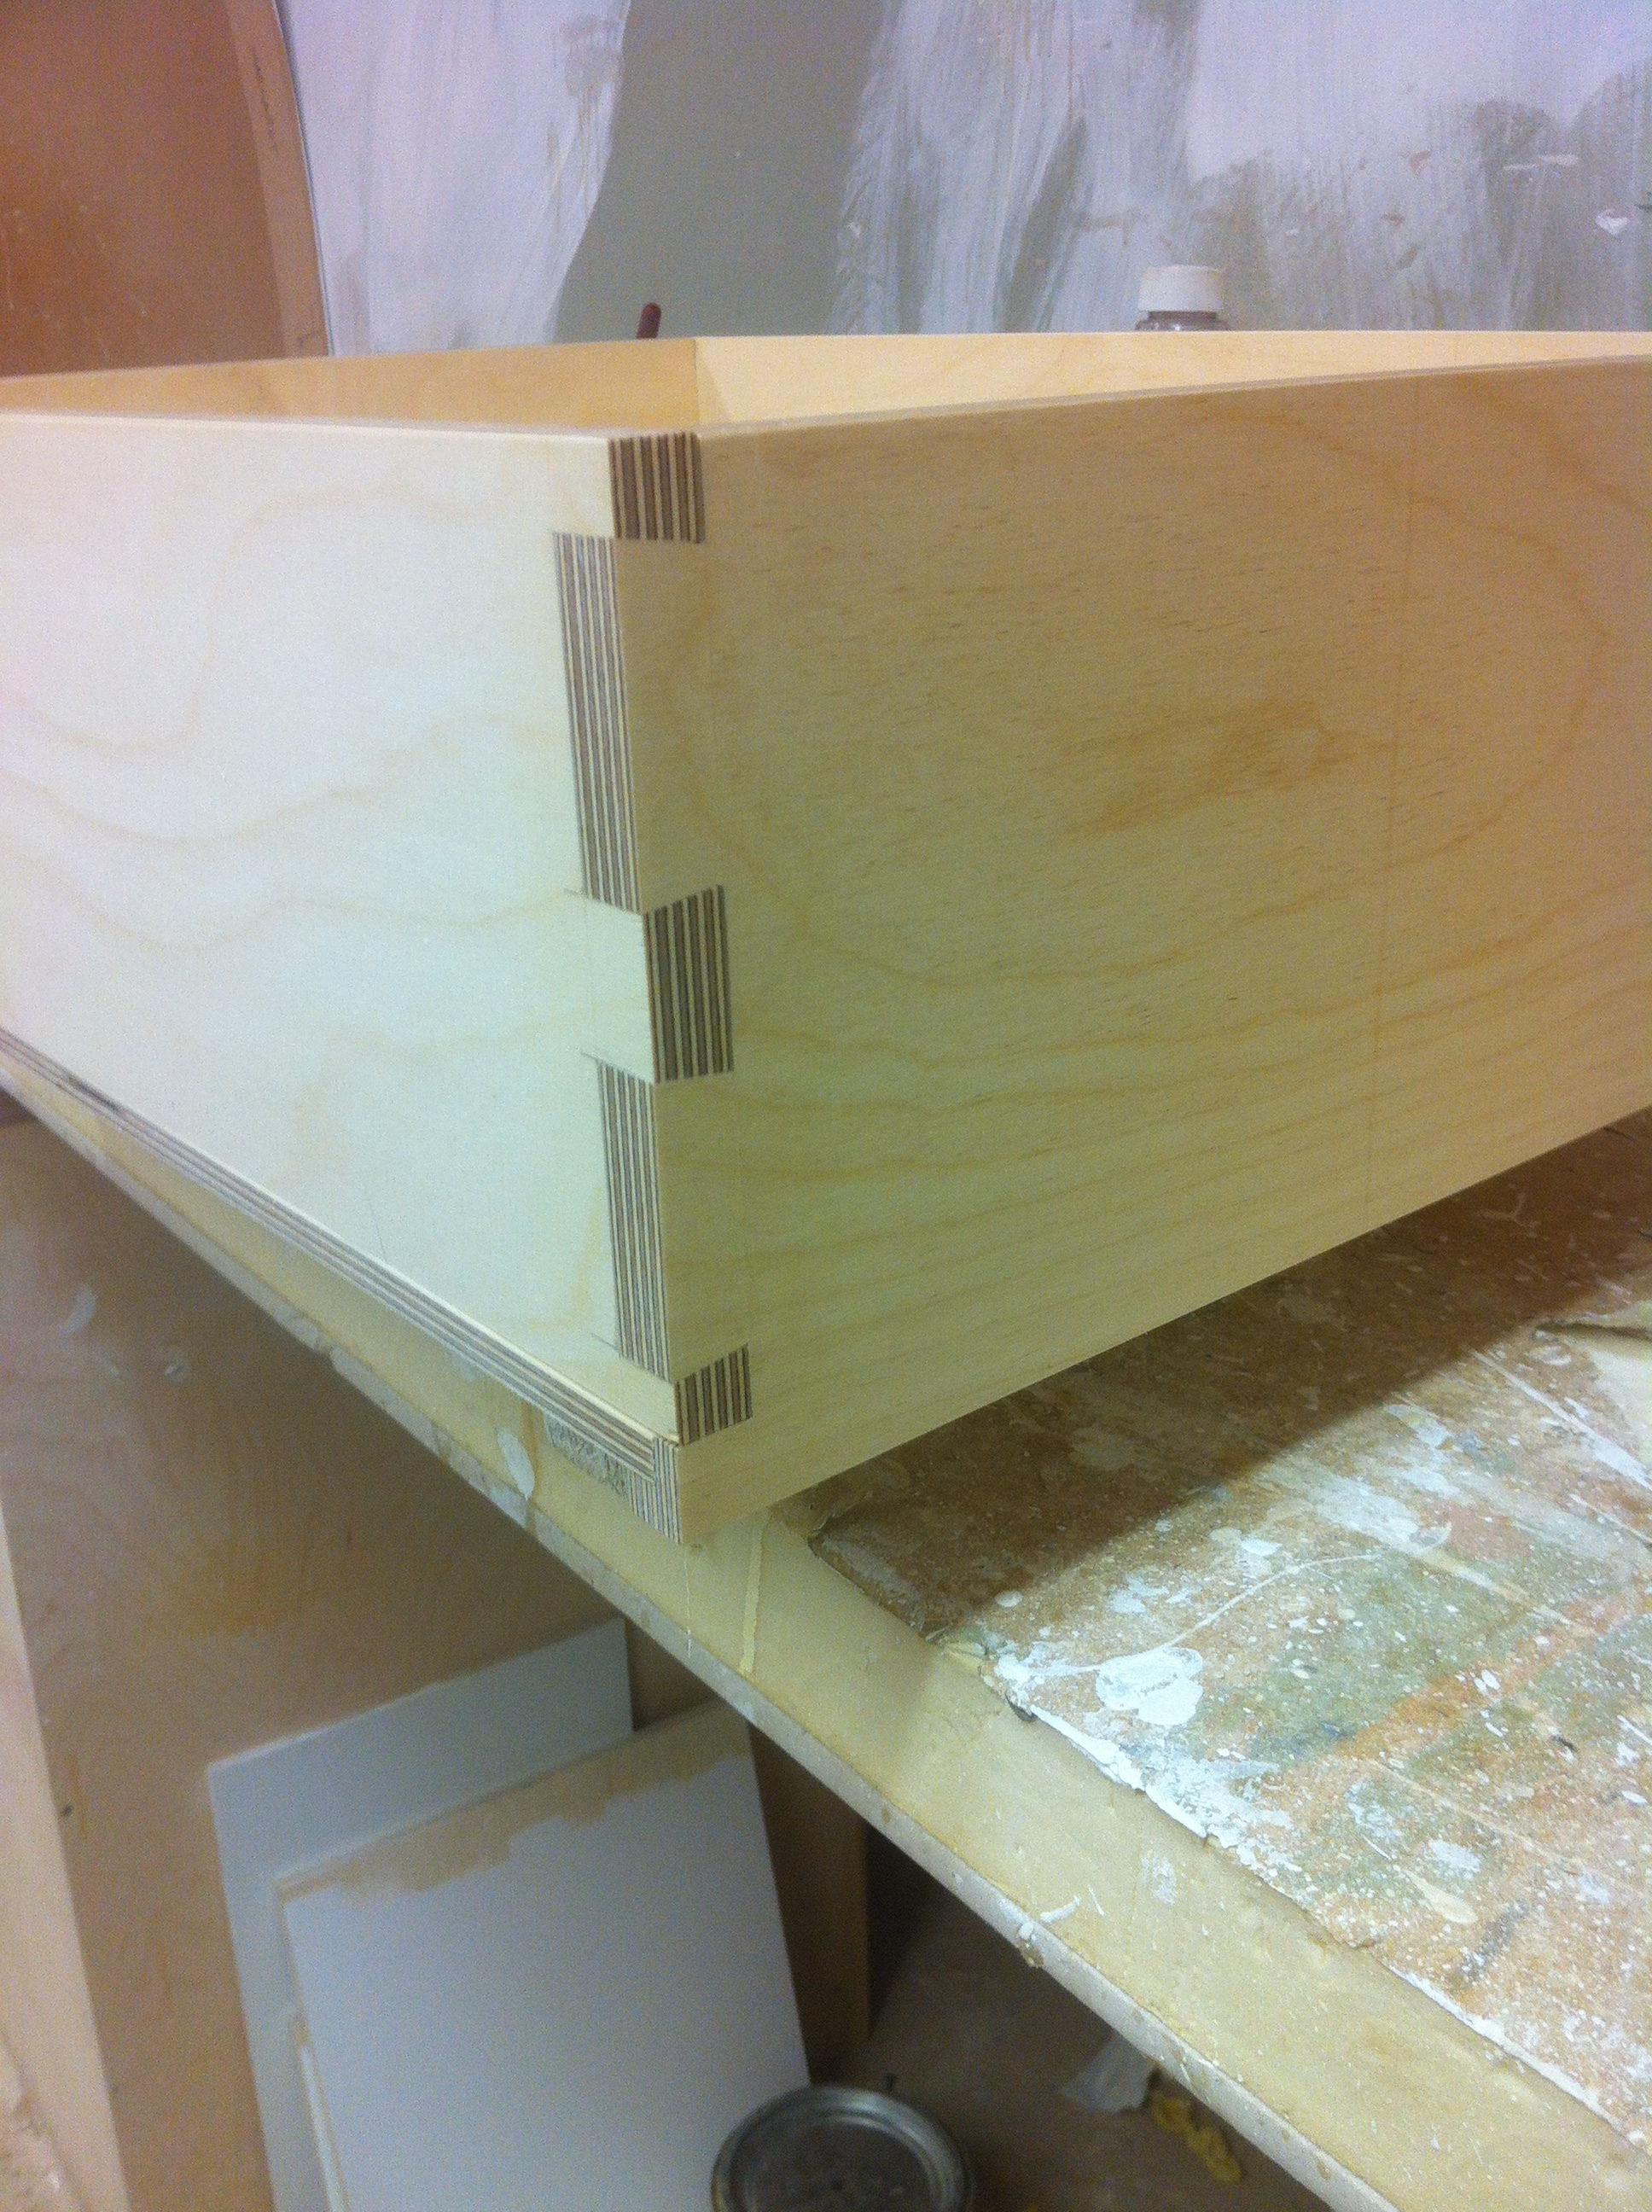 More lovely dovetails.